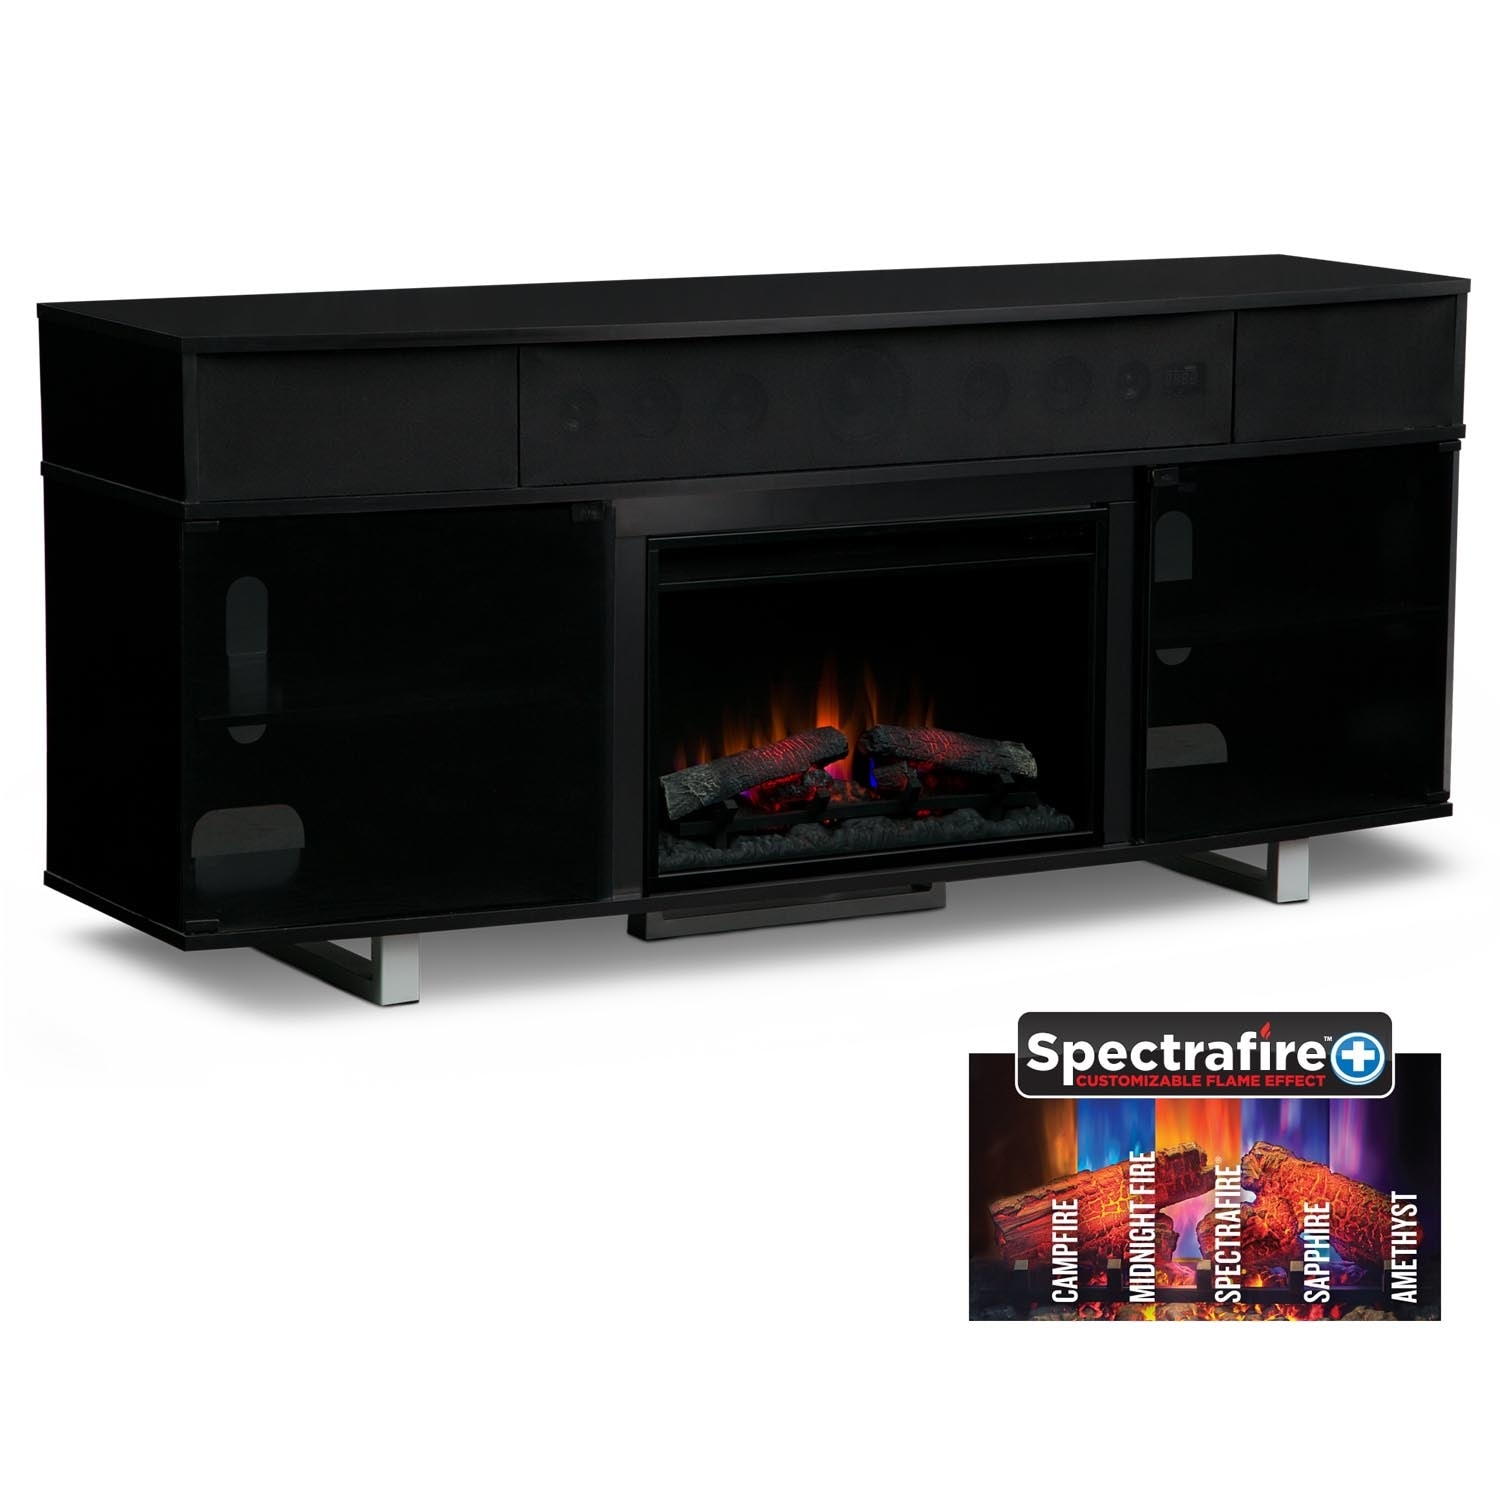 "Pacer 72"" Traditional Fireplace TV Stand with Sound Bar - Black"